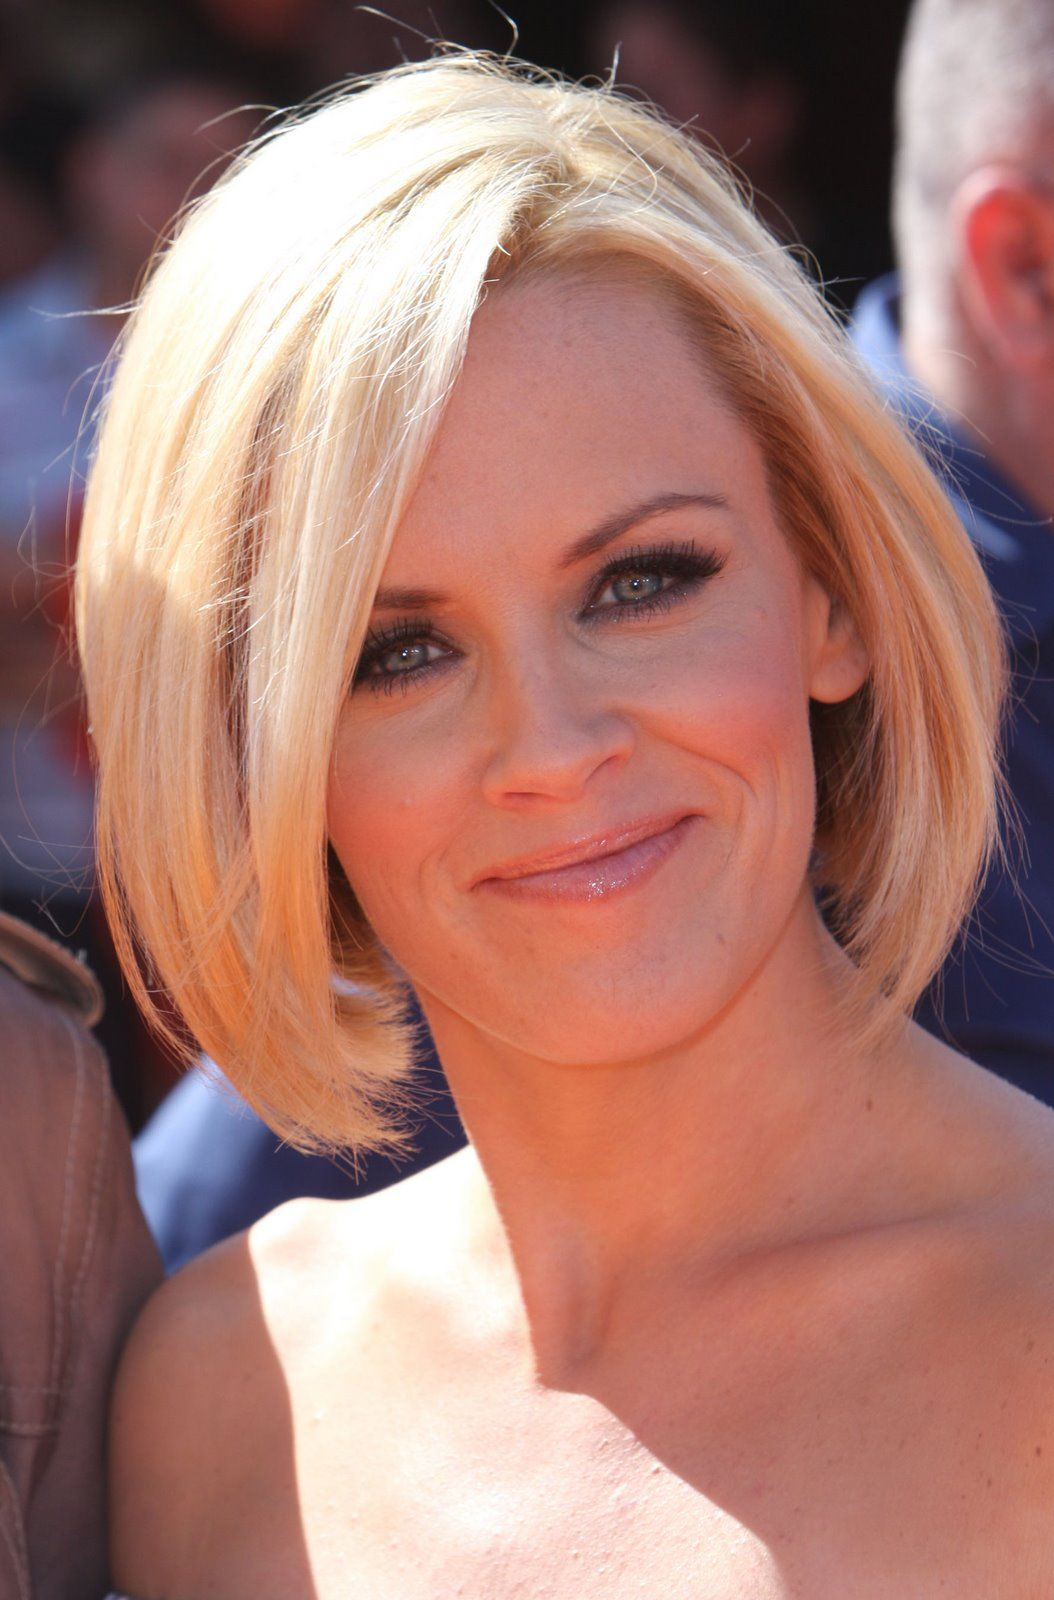 Haircuts bob medium 201&4 celebrity style forecasting to wear for everyday in 2019